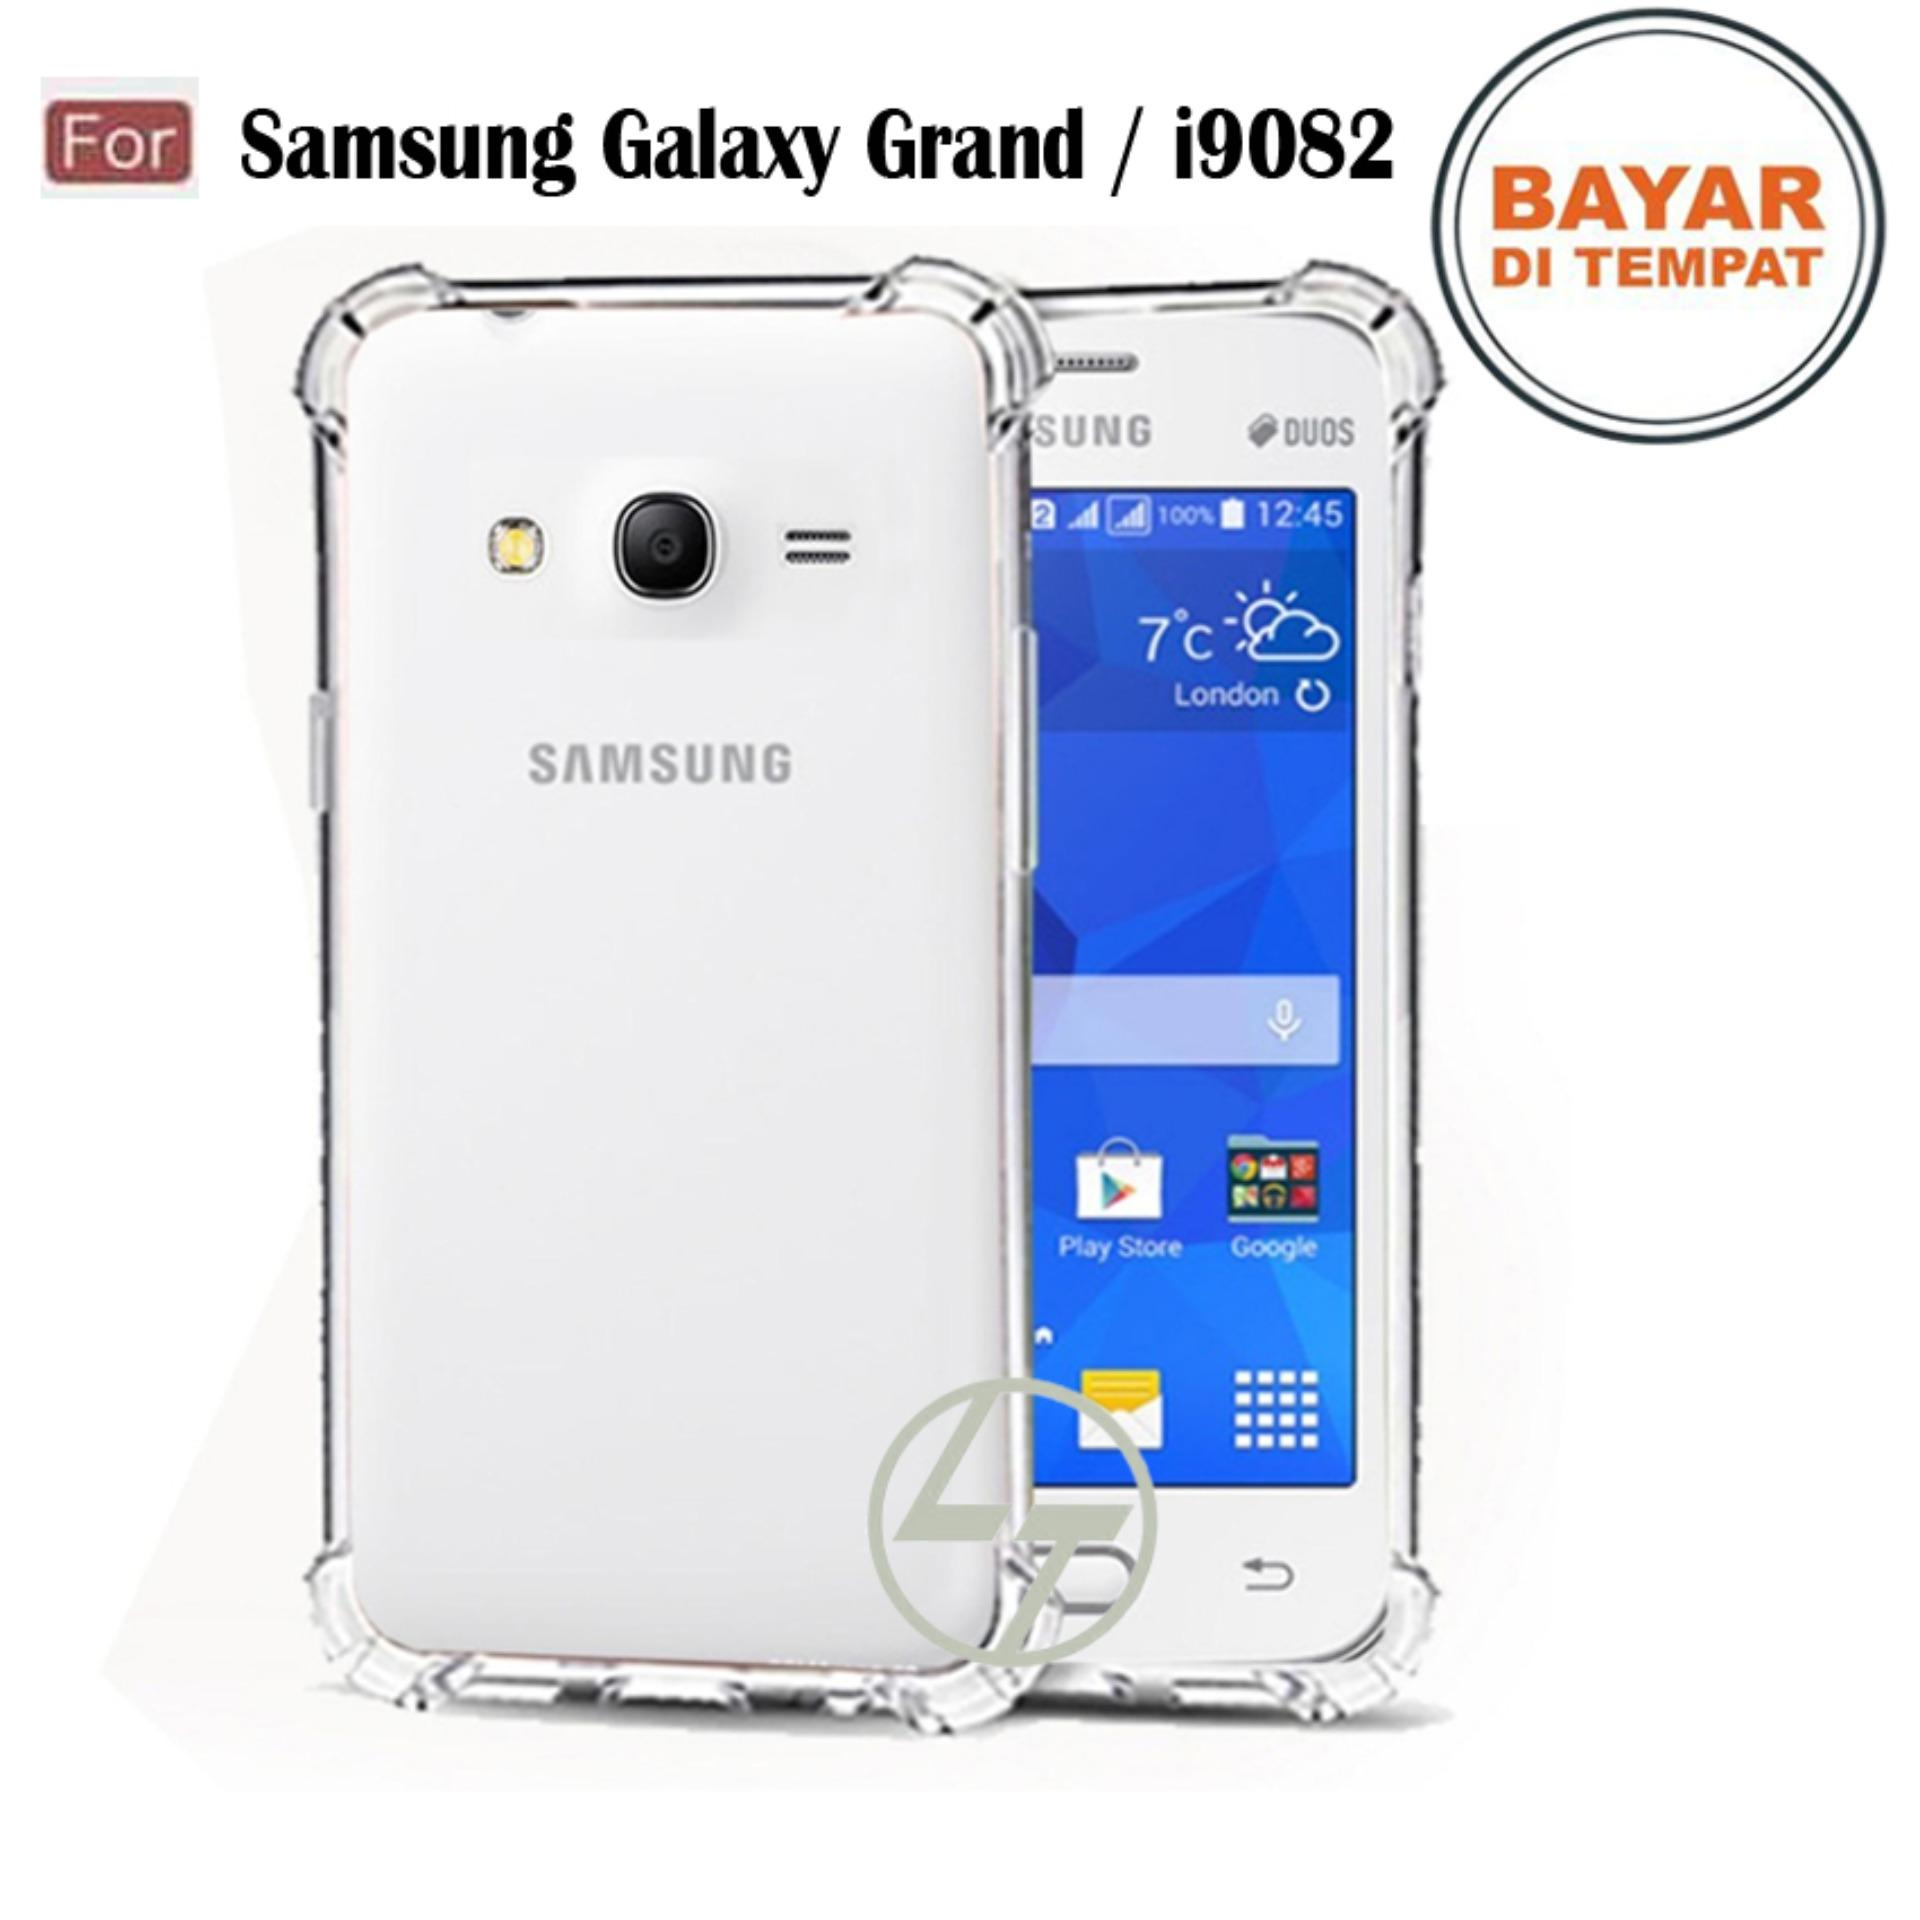 Lapak Case - Softcase Anti Crack Silikon Casing Anticrack Anti Bentur Terbaik Untuk Samsung Galaxy Grand Duos / i9082 /Grand 1 / Grand Z